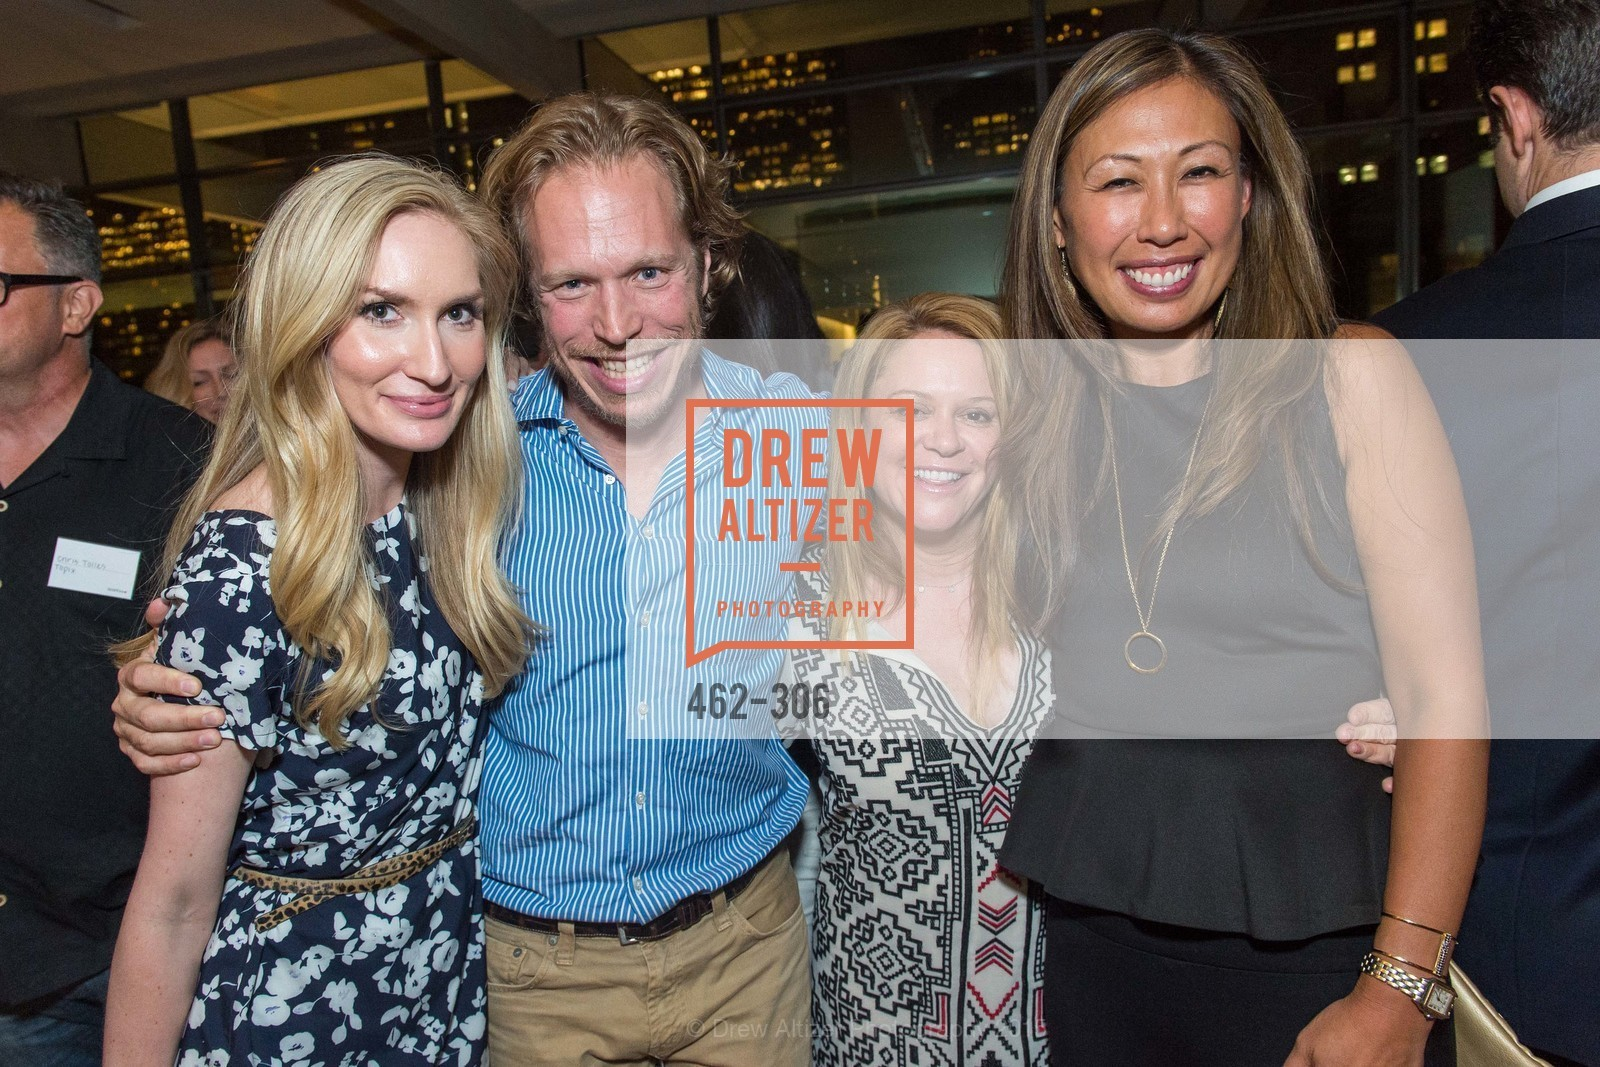 Kelsey Cullen, Alexander Lloyd, Donna Burke, Joy Boatwright, Sparkpr's Annual Rooftop Soirée, The Battery Penthouse, September 22nd, 2015,Drew Altizer, Drew Altizer Photography, full-service agency, private events, San Francisco photographer, photographer california